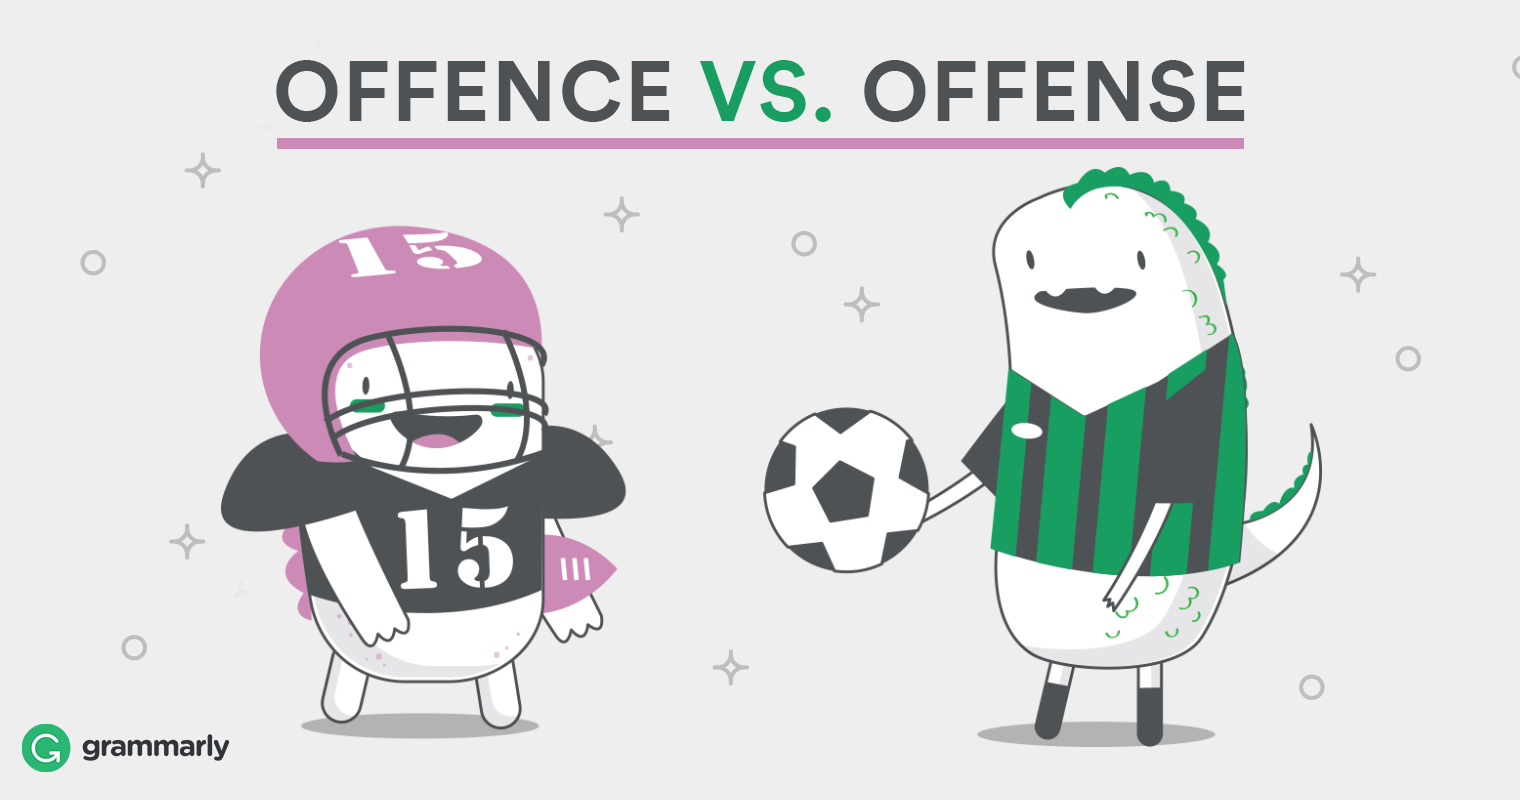 Offence vs. Offense—What Is the Difference? image